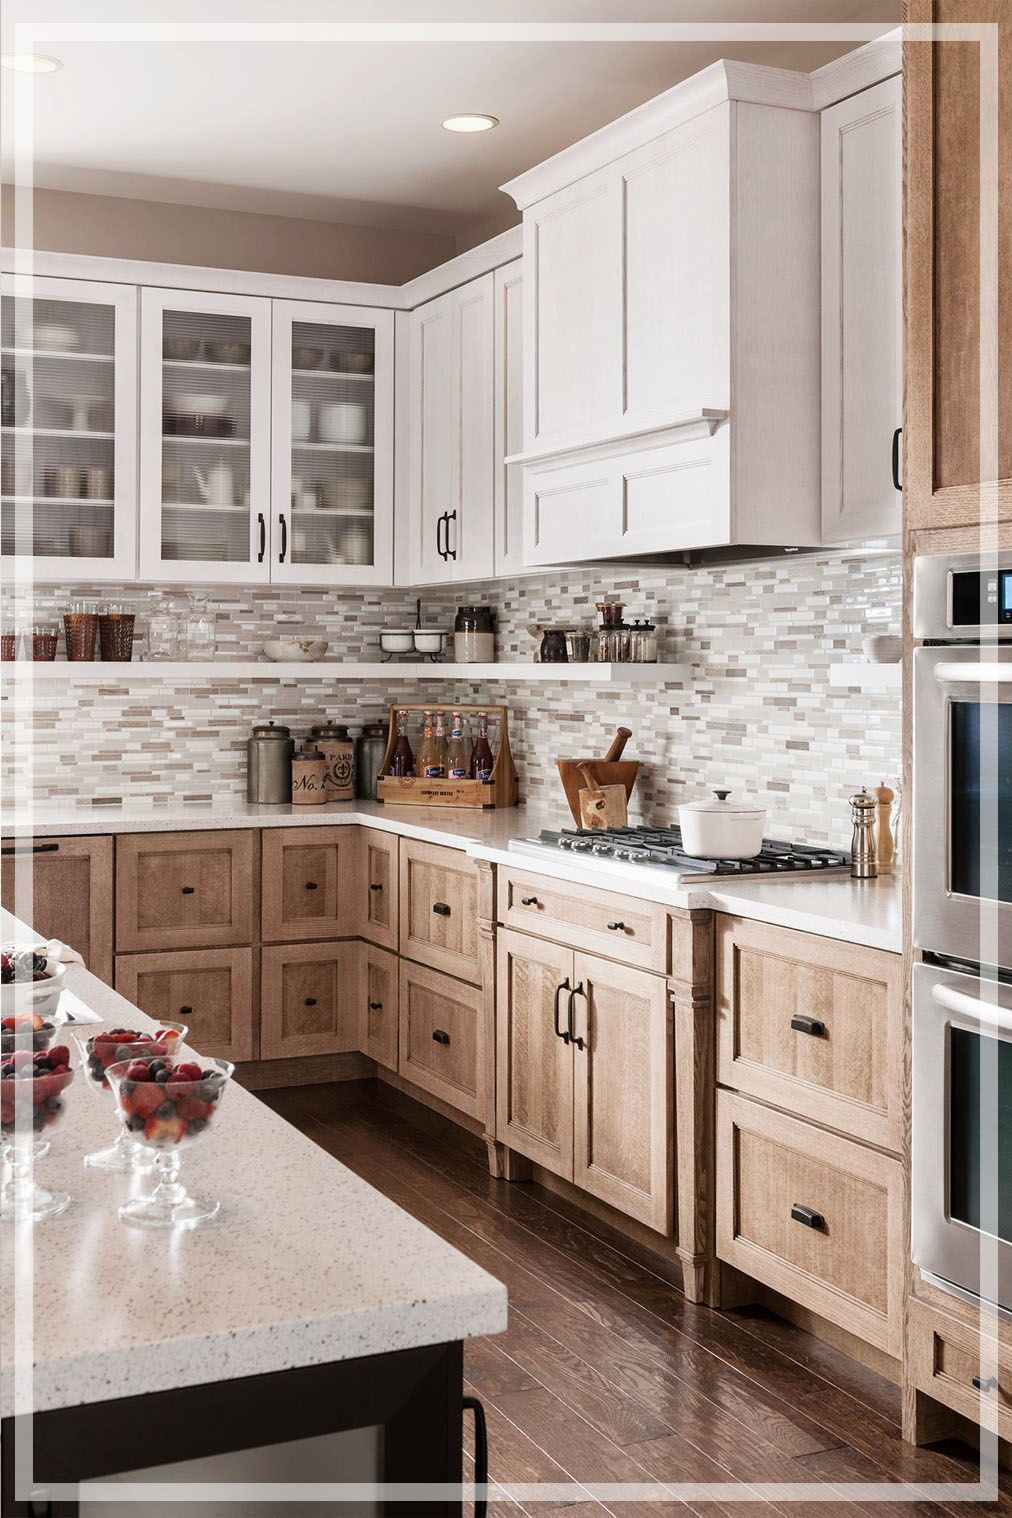 33 Affordable Farmhouse Style Kitchen Ideas Designs How To Decorate Modern Kitchen Cabinet Design Kitchen Decor Modern Farmhouse Style Kitchen